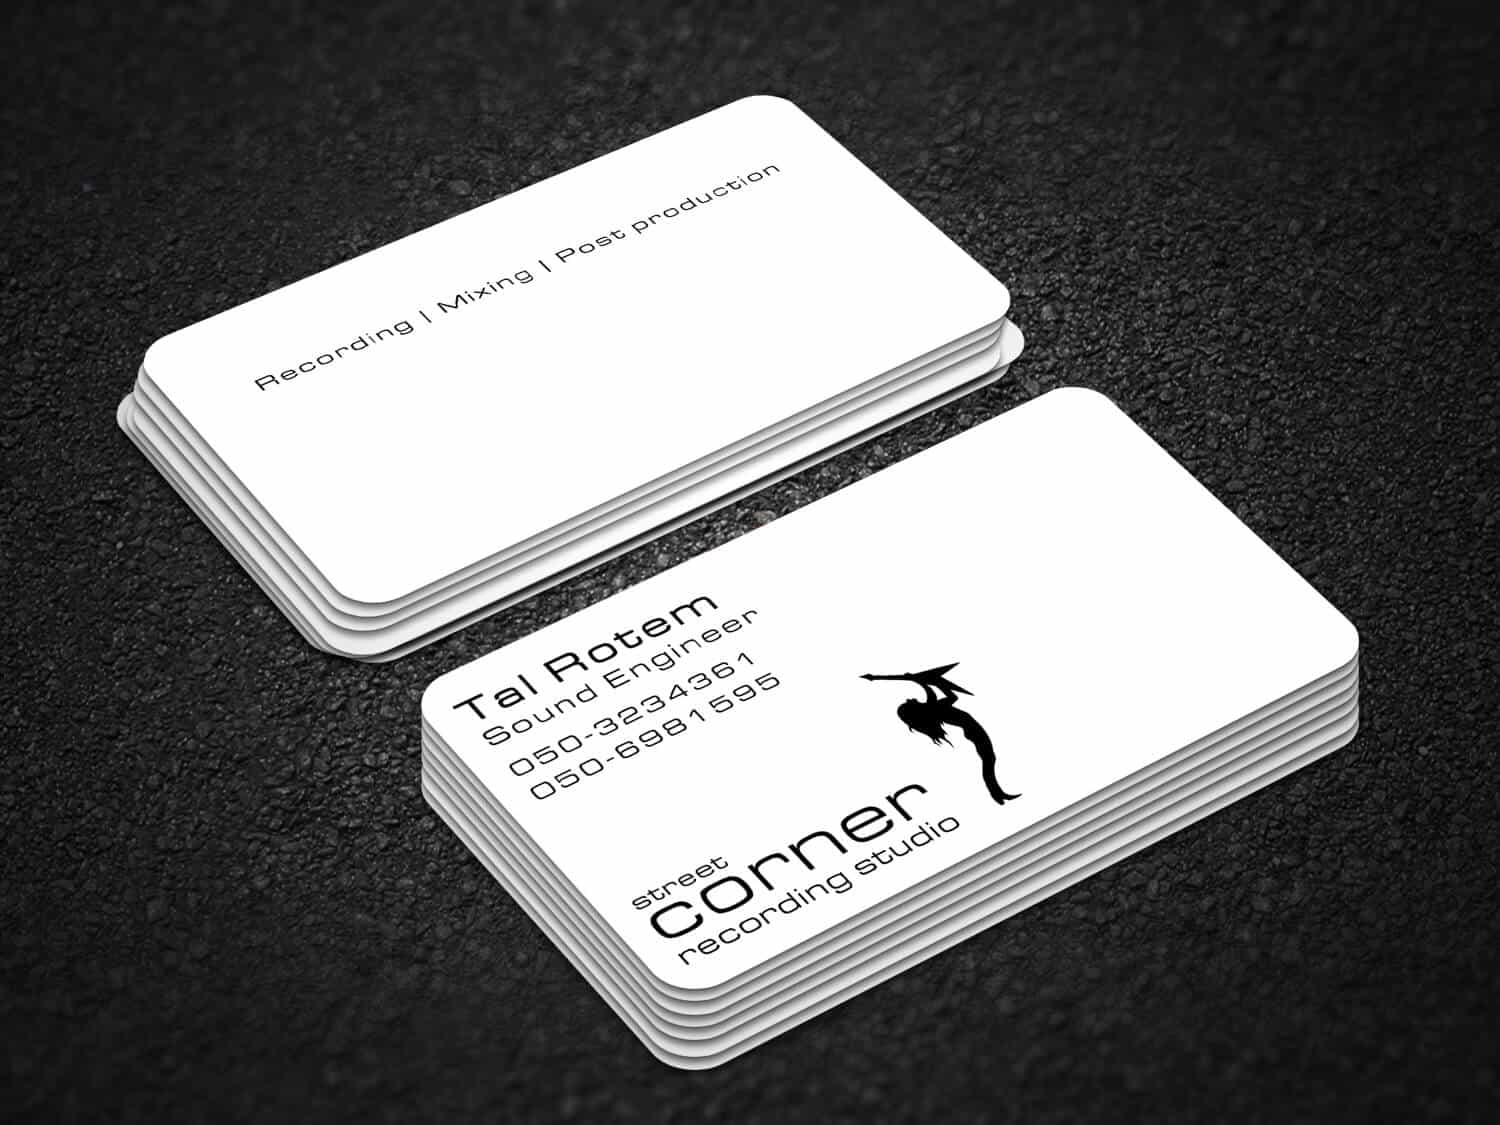 Business cards archives graphic design logo design web design streetcornerbusinesscardtwosidedb streetcornerbusinesscardtwosidedb street corner business card design two sided colourmoves